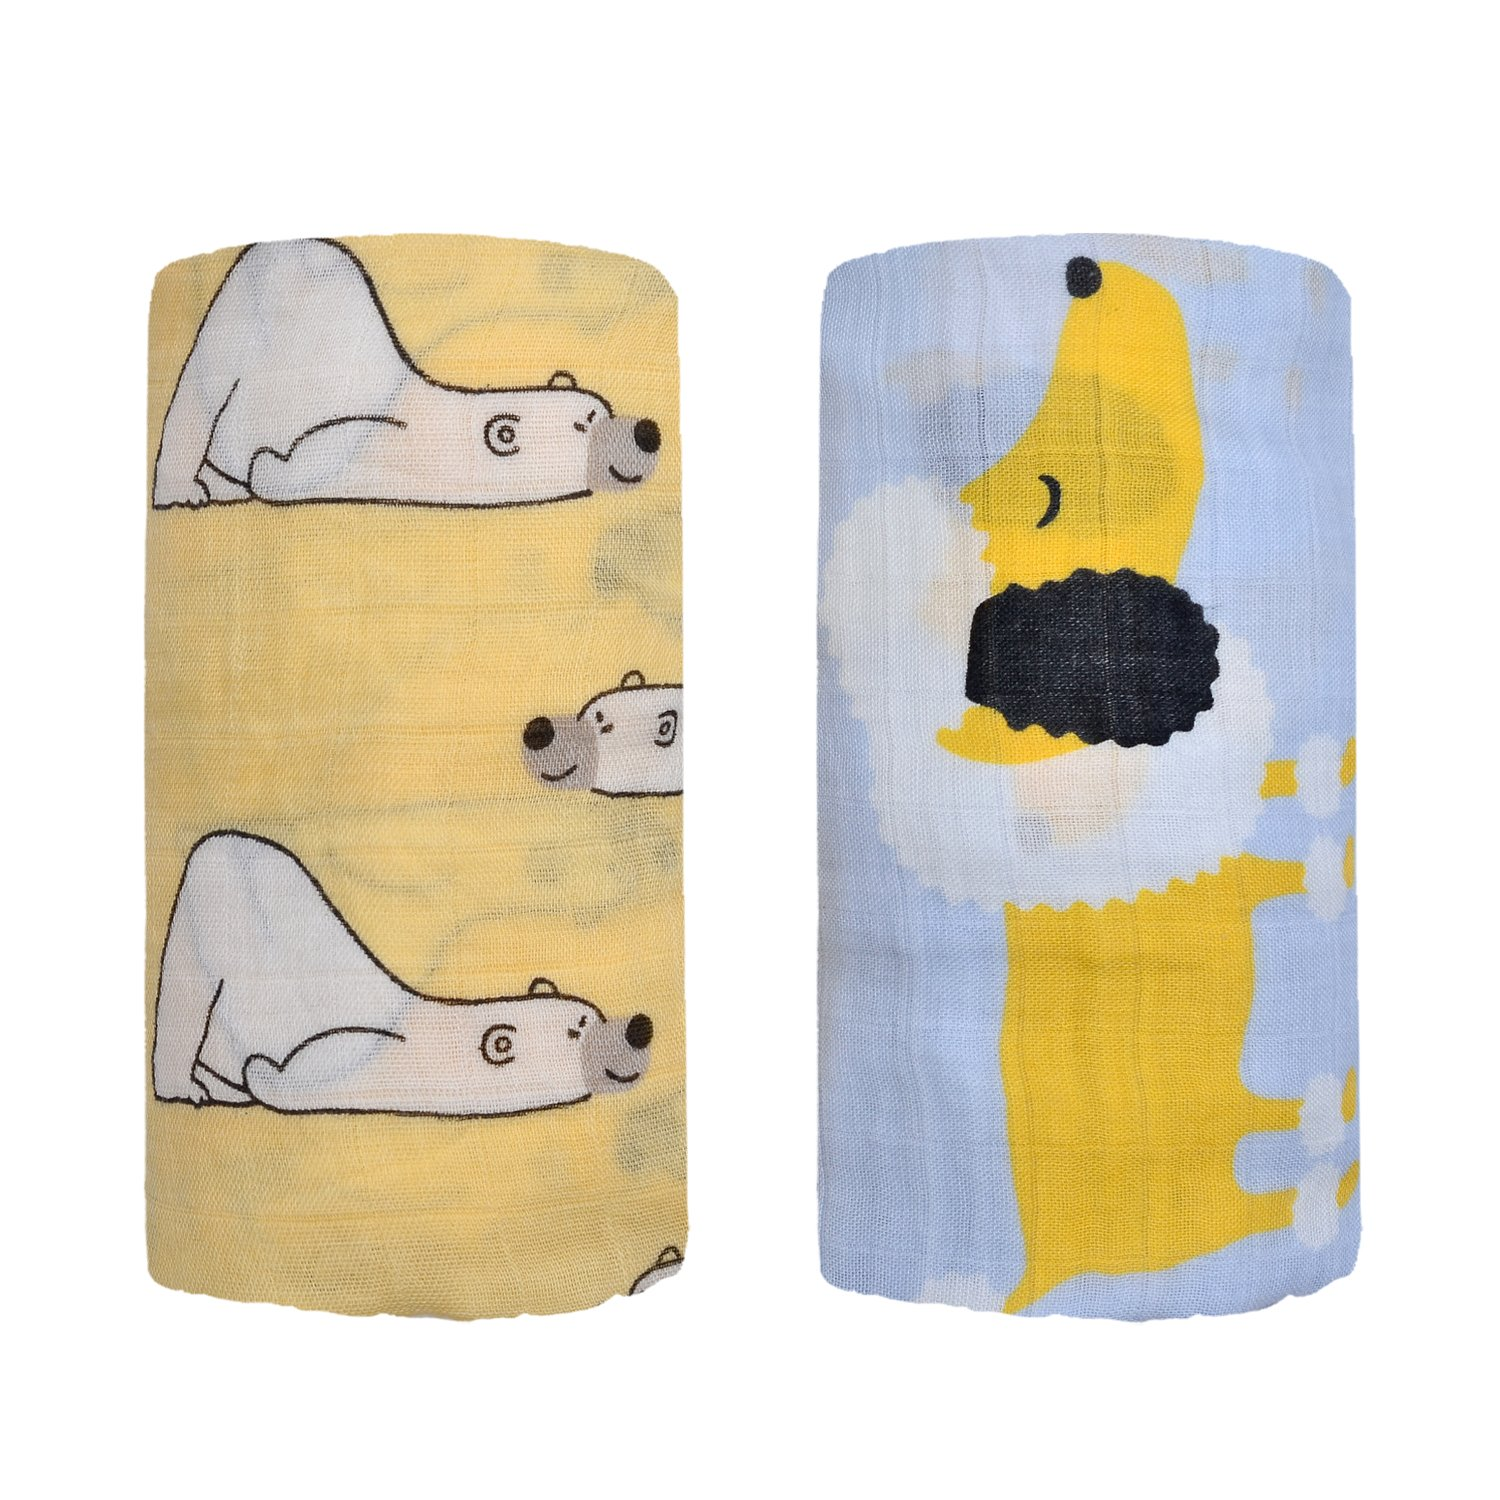 Bamboo Muslin Swaddle Square Blankets 2 Pack 120x120cm Polar Bear/& Puppy Print Baby Receiving Blanket Wrap for Girl Shower Gift by Qav Juh Polar Bear/& Puppy